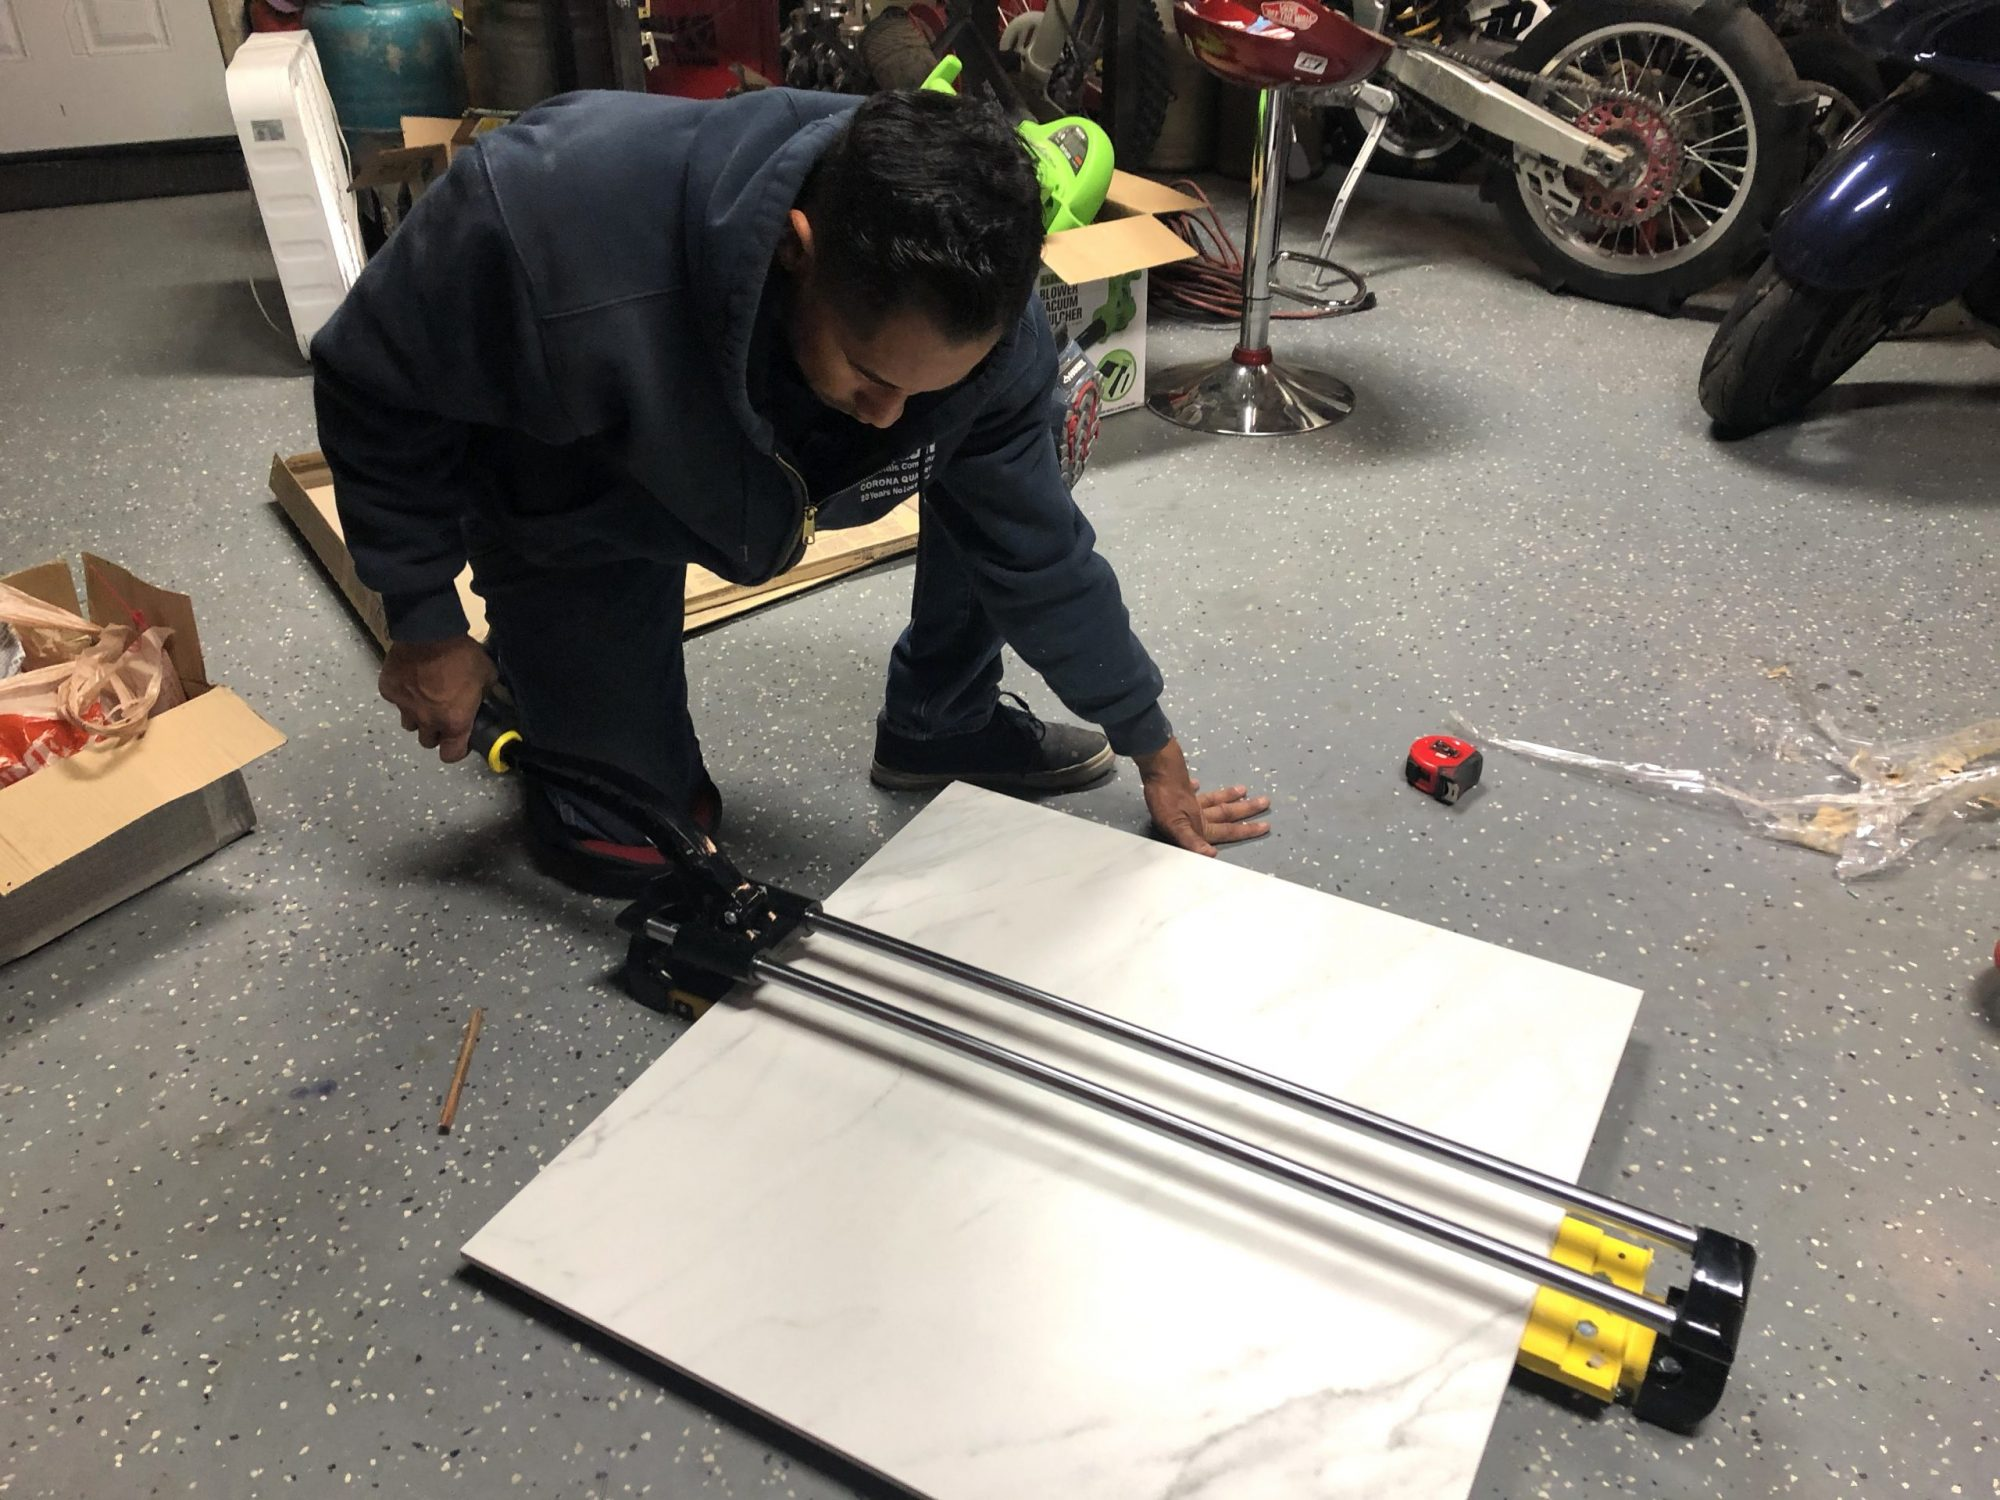 Jun using a large format tile cutter to cut down a 30x30 tile into 14x14 tiles